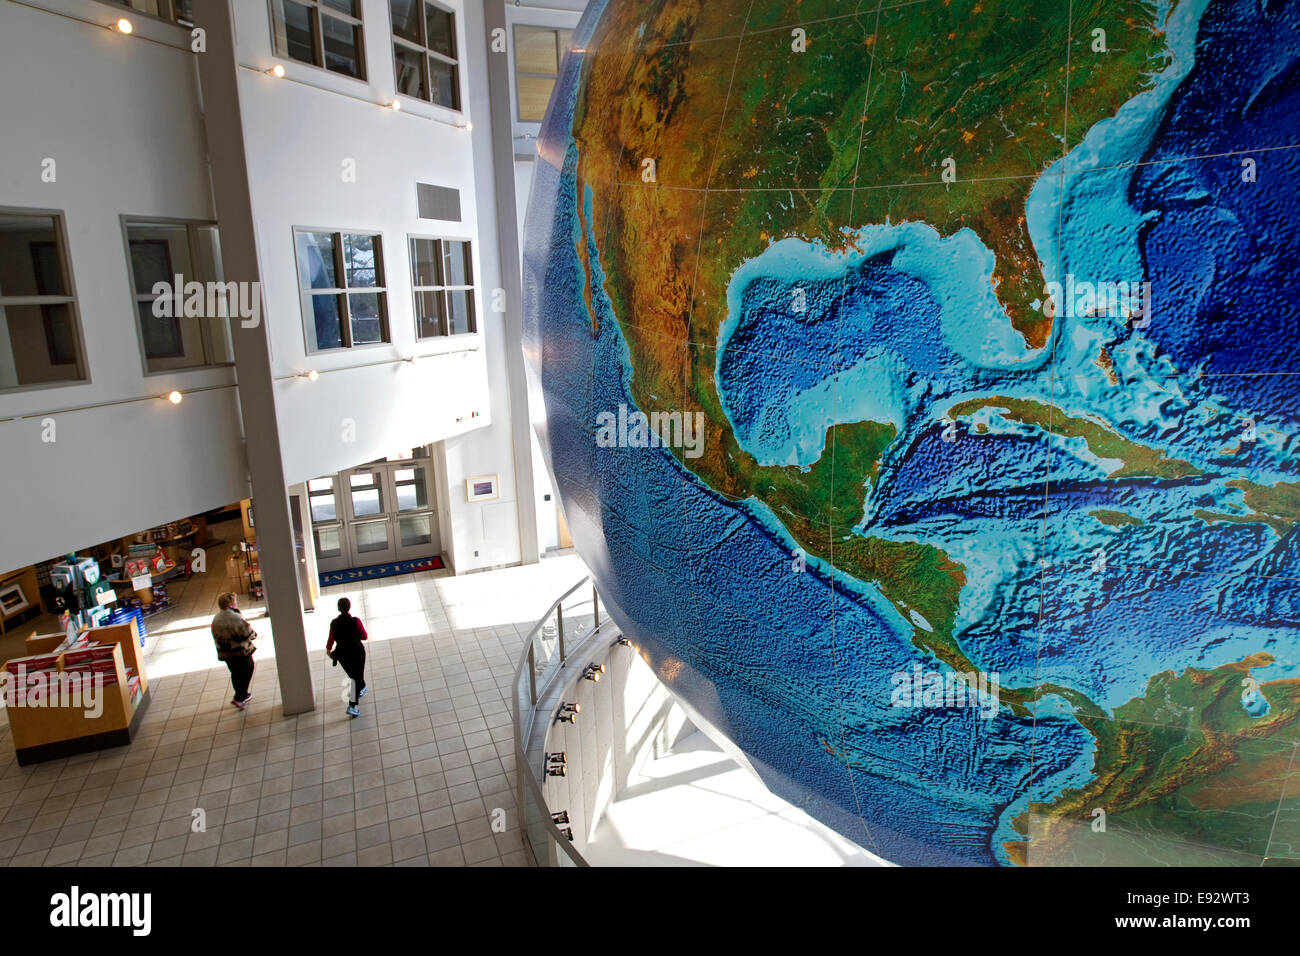 Globe eartha worlds largest revolving and rotating globe delorme globe eartha worlds largest revolving and rotating globe delorme map store yarmouth maine gumiabroncs Gallery